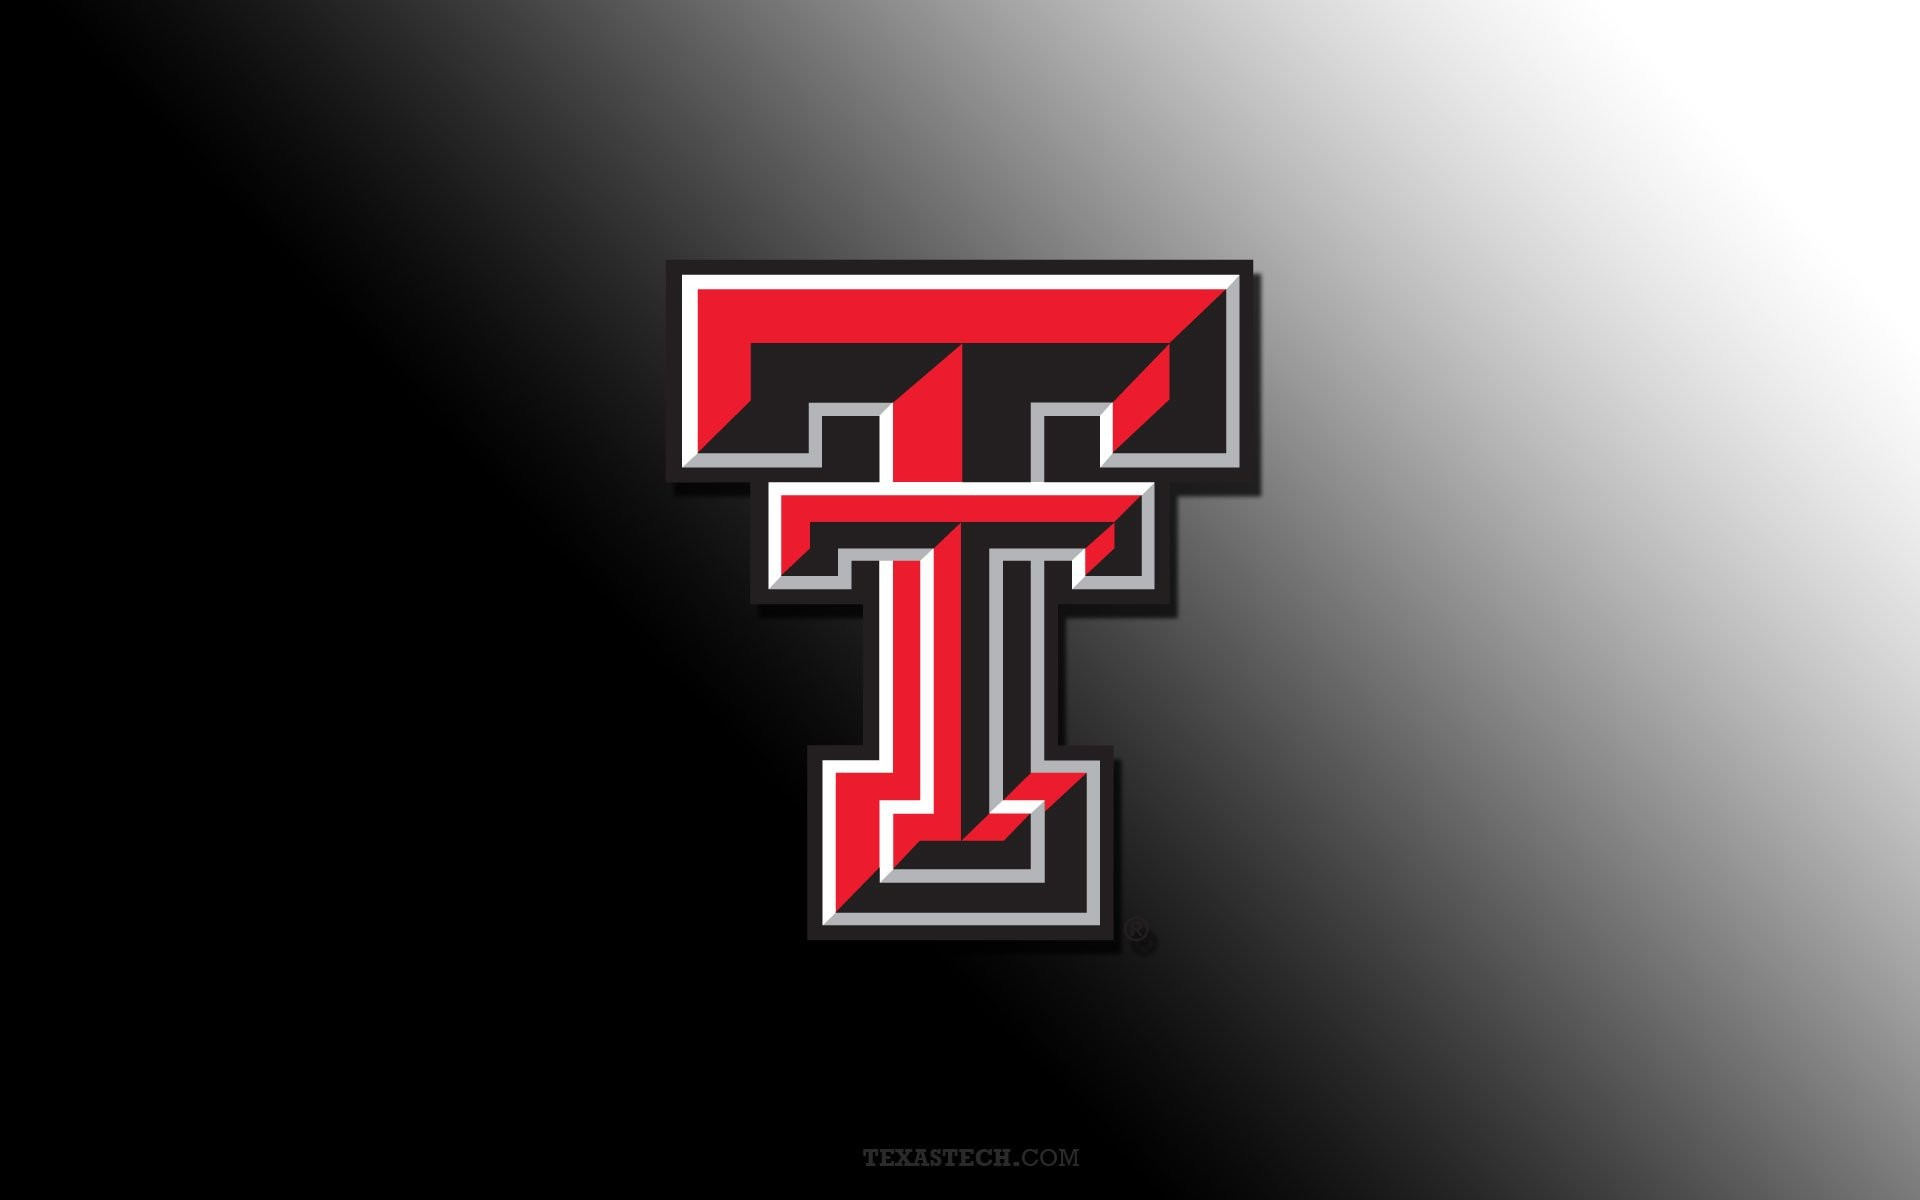 texas tech wallpaper (61+ images)